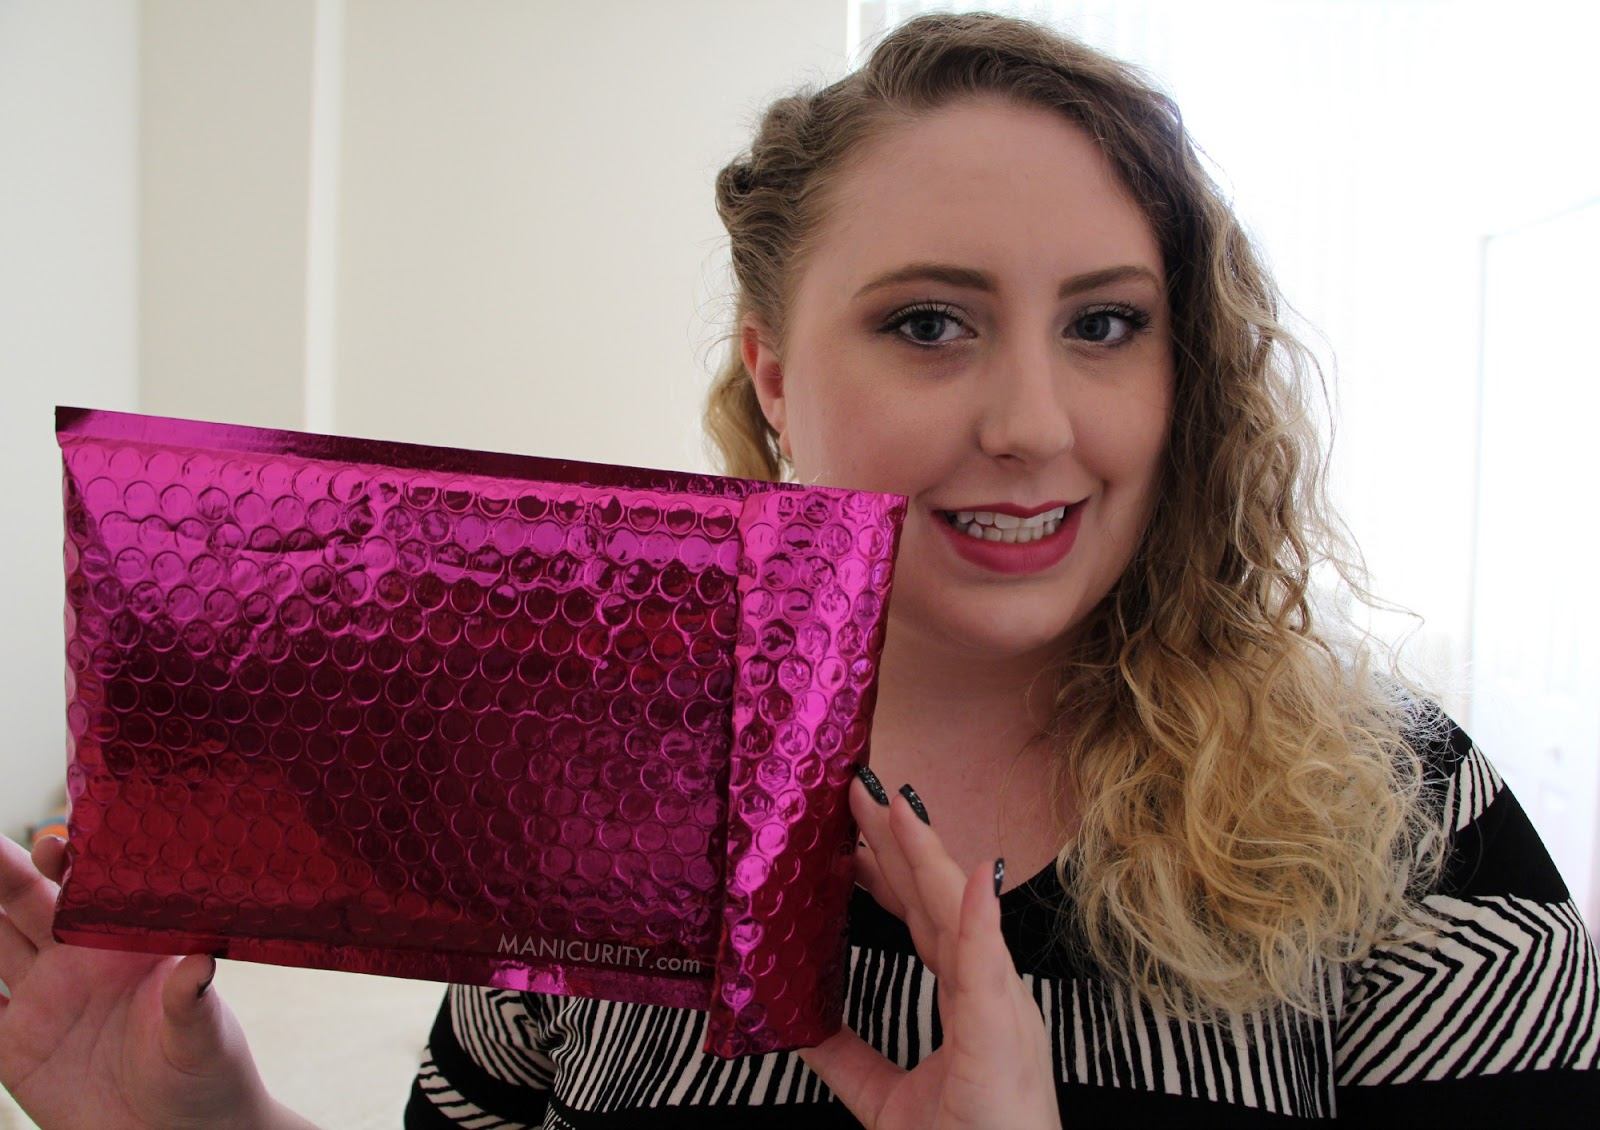 Ipsy Glam Bag January 2014 - First Impressions | Manicurity.com